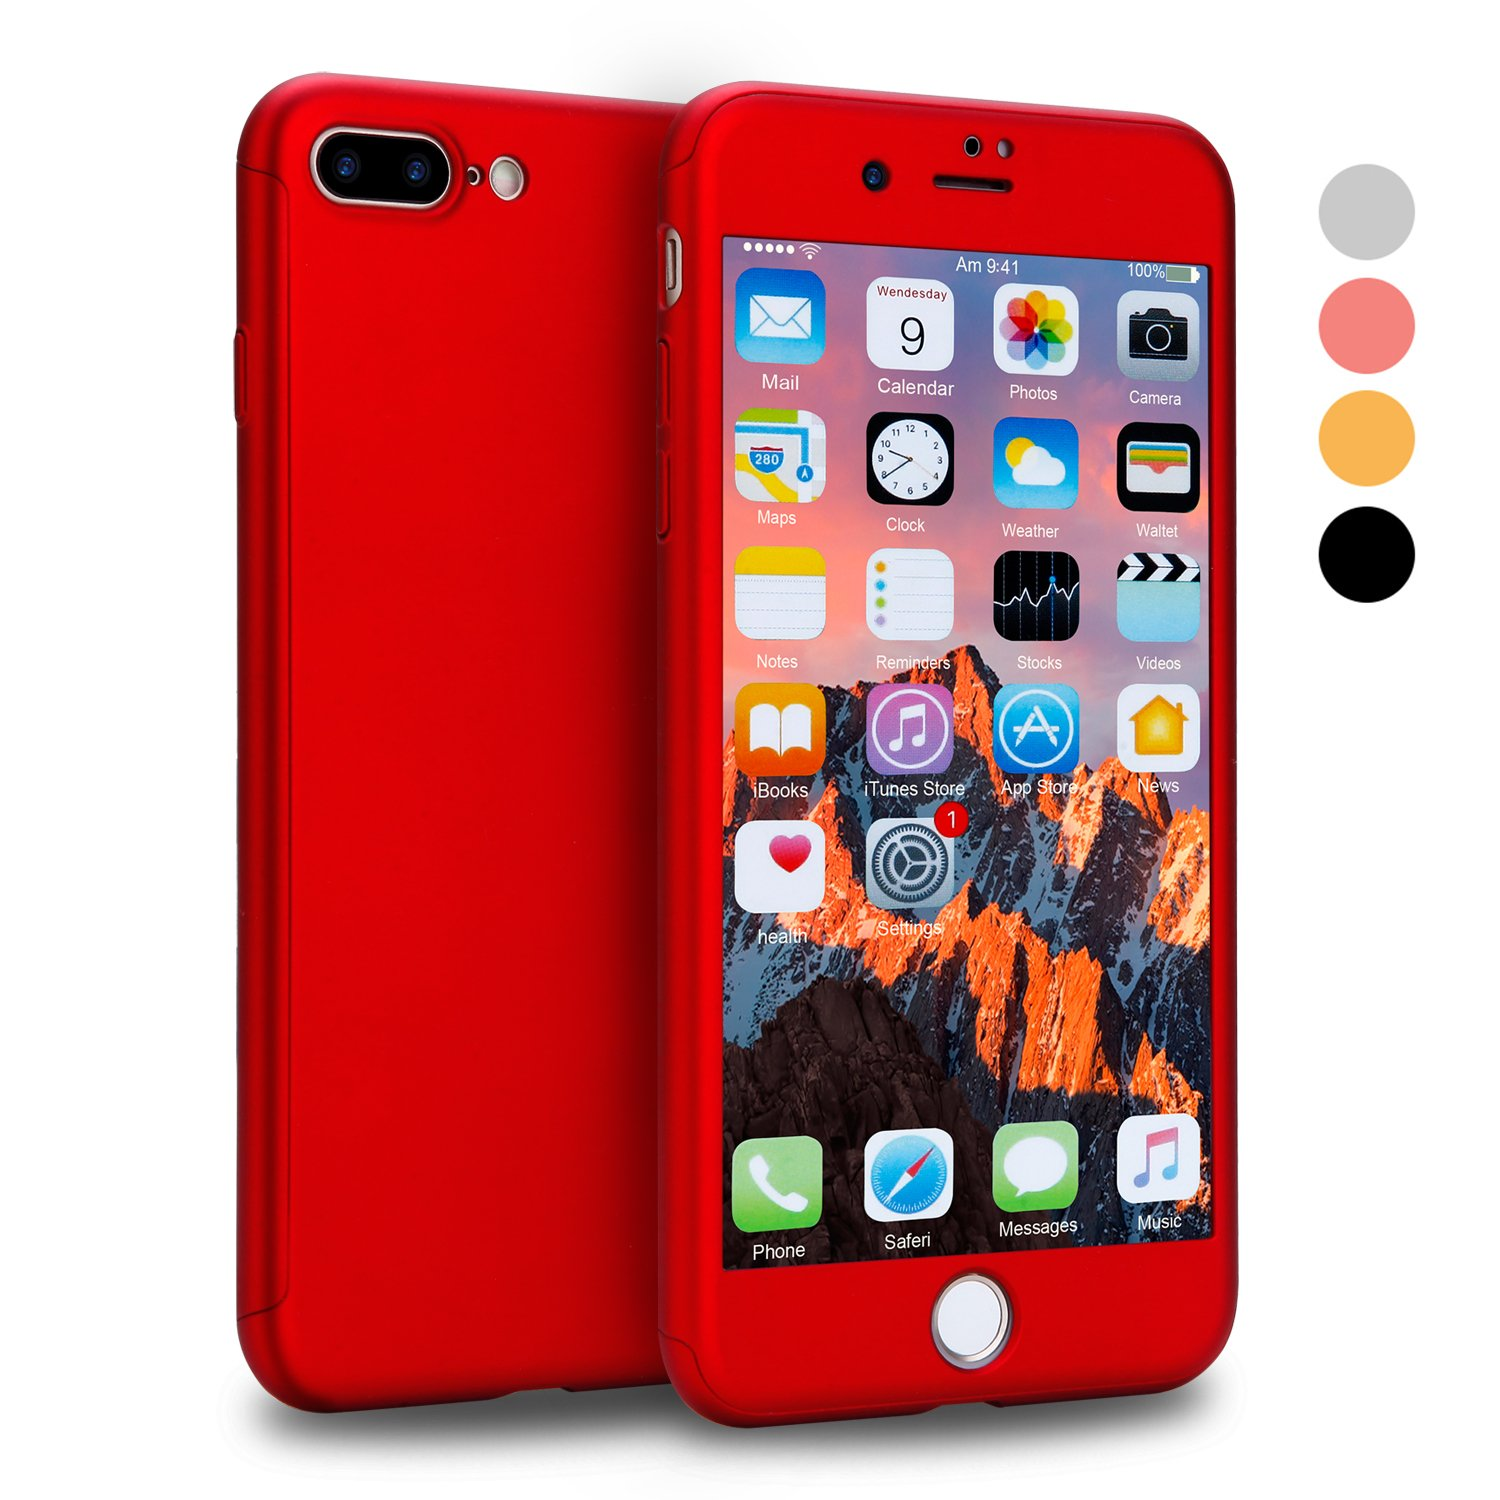 iPhone 7 Plus Case, CANSHN 360 Full Body Protection Hard Slim Case Coated Non Slip Matte Surface with Tempered Glass Screen Protector for Apple iPhone 7 Plus Only (5.5-inch) - Red